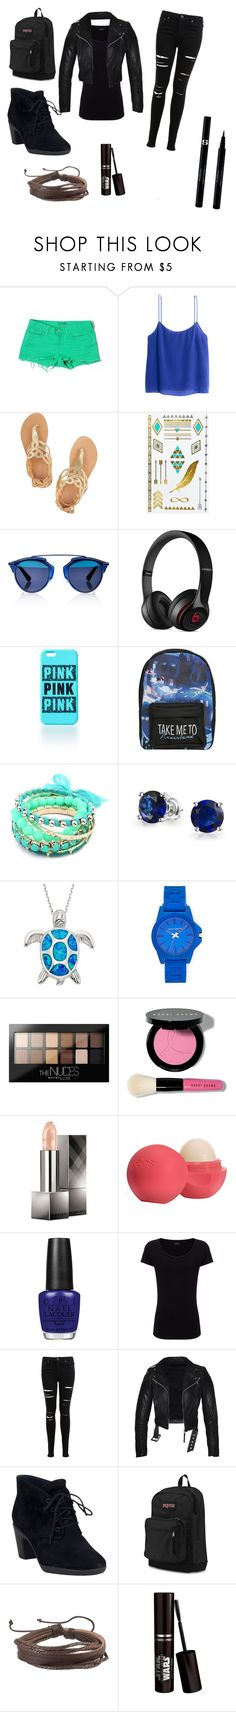 """""""Dauntless outfit"""" by fangirl-for-life-12 ❤ liked on Polyvore featuring J Brand, H&M, Ancient Greek Sandals, MANGO, Christian Dior, Beats by Dr. Dre, Disney, Ruby Rocks, Bling Jewelry and Vince Camuto"""